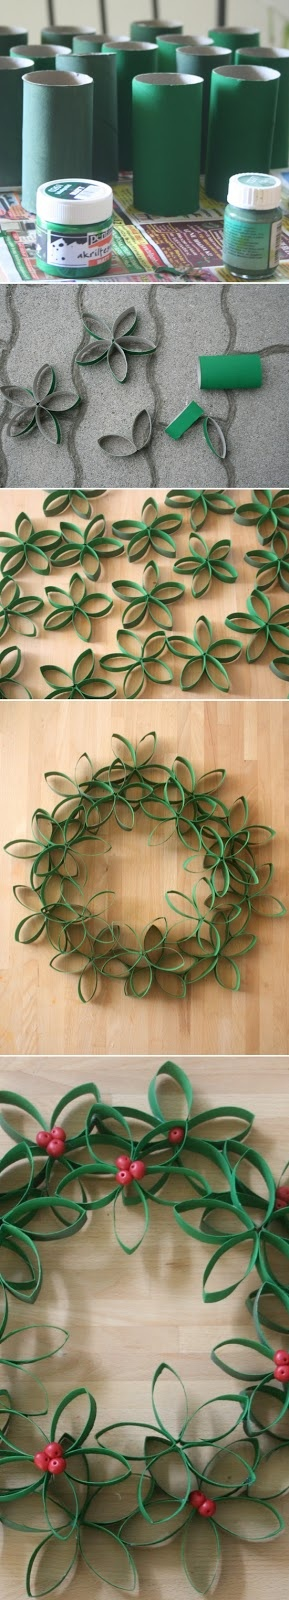 Toilet Paper Roll Wreath | Crafts and DIY Community - For Christmastime!